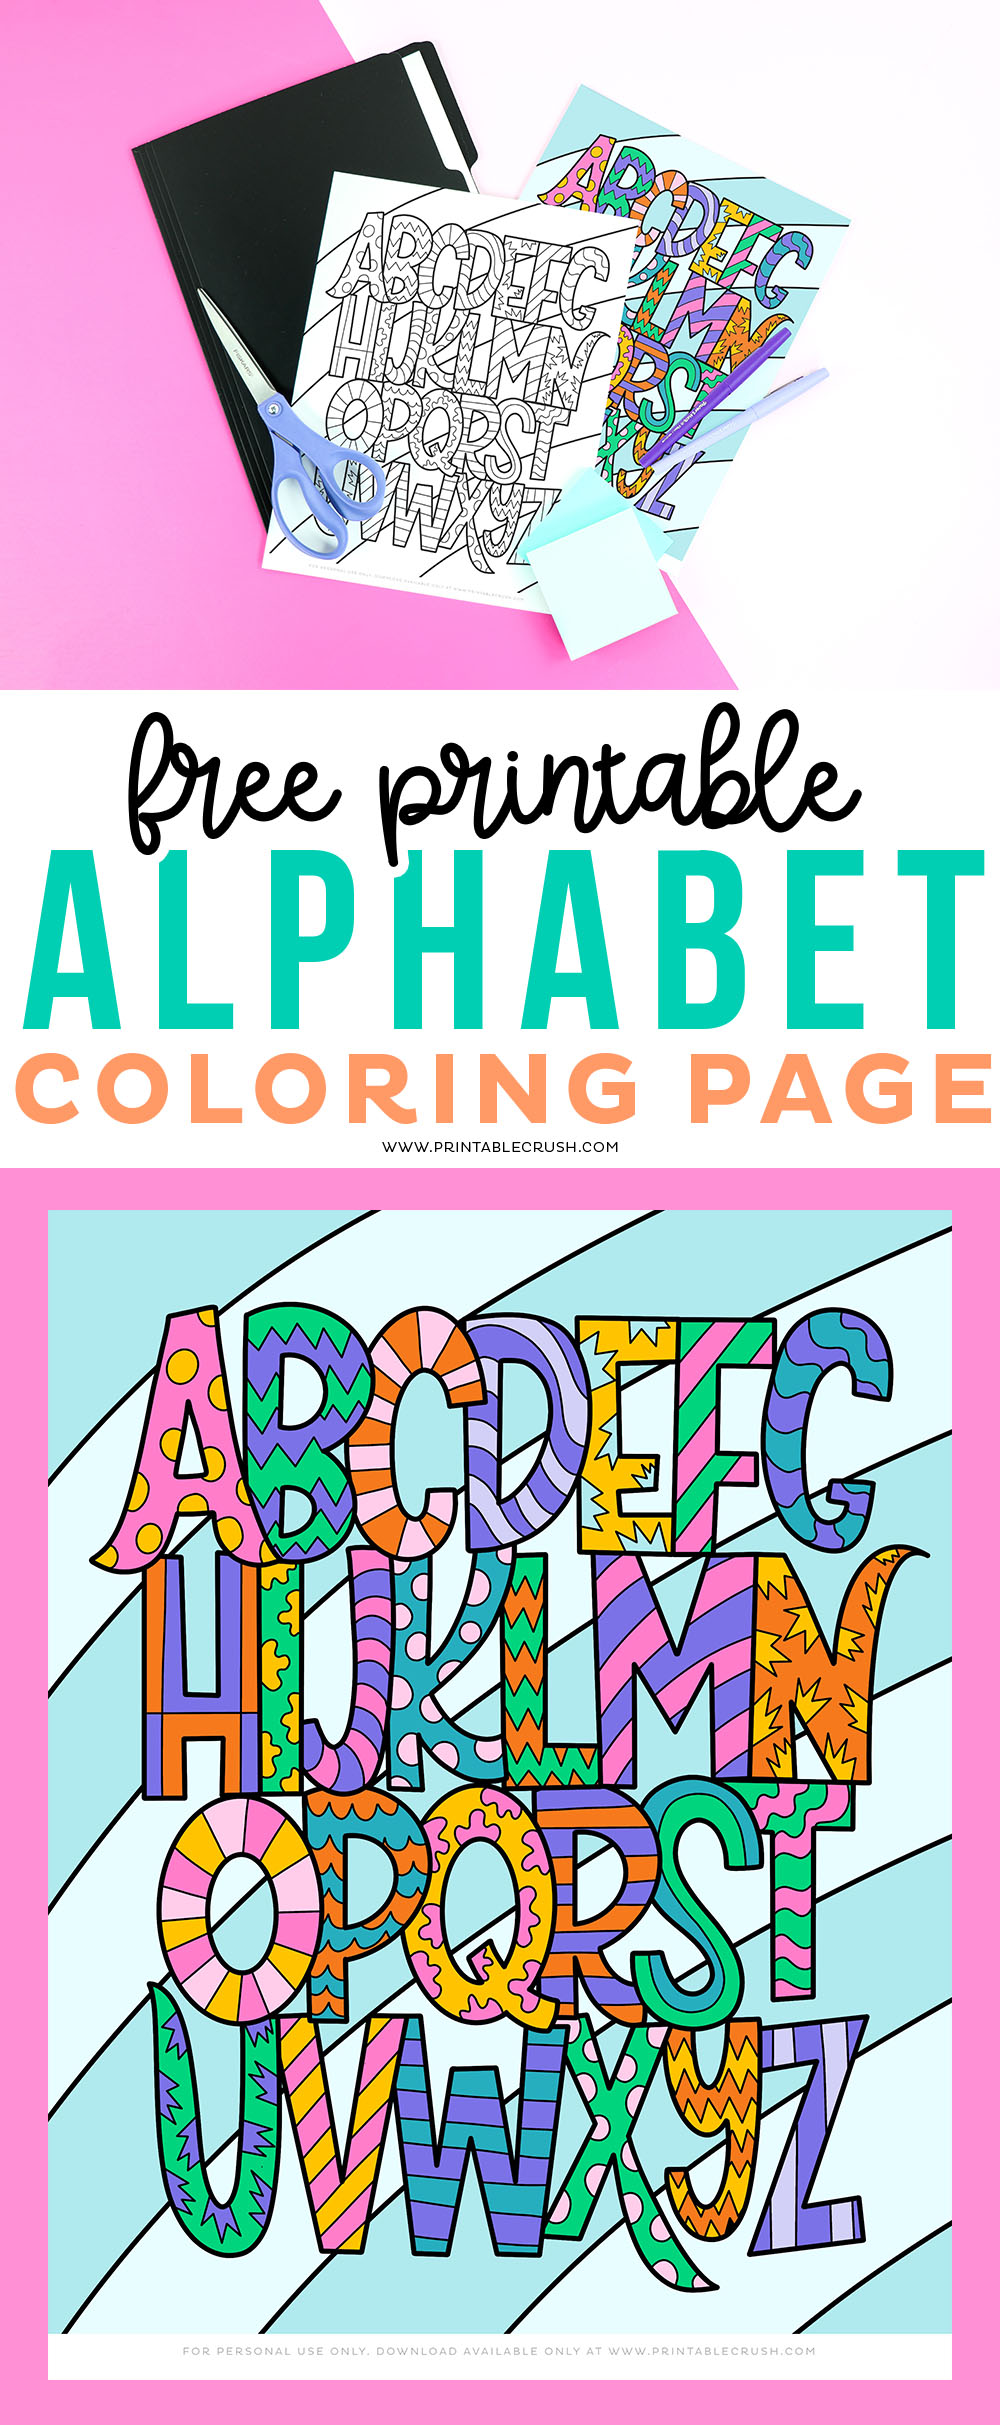 Help your kids learn their ABC's in a fun way with this Free Printable Alphabet Coloring Page! #freeprintable #coloringpage #preschoolactivity #alphabetcoloringpage #alphabetlearning